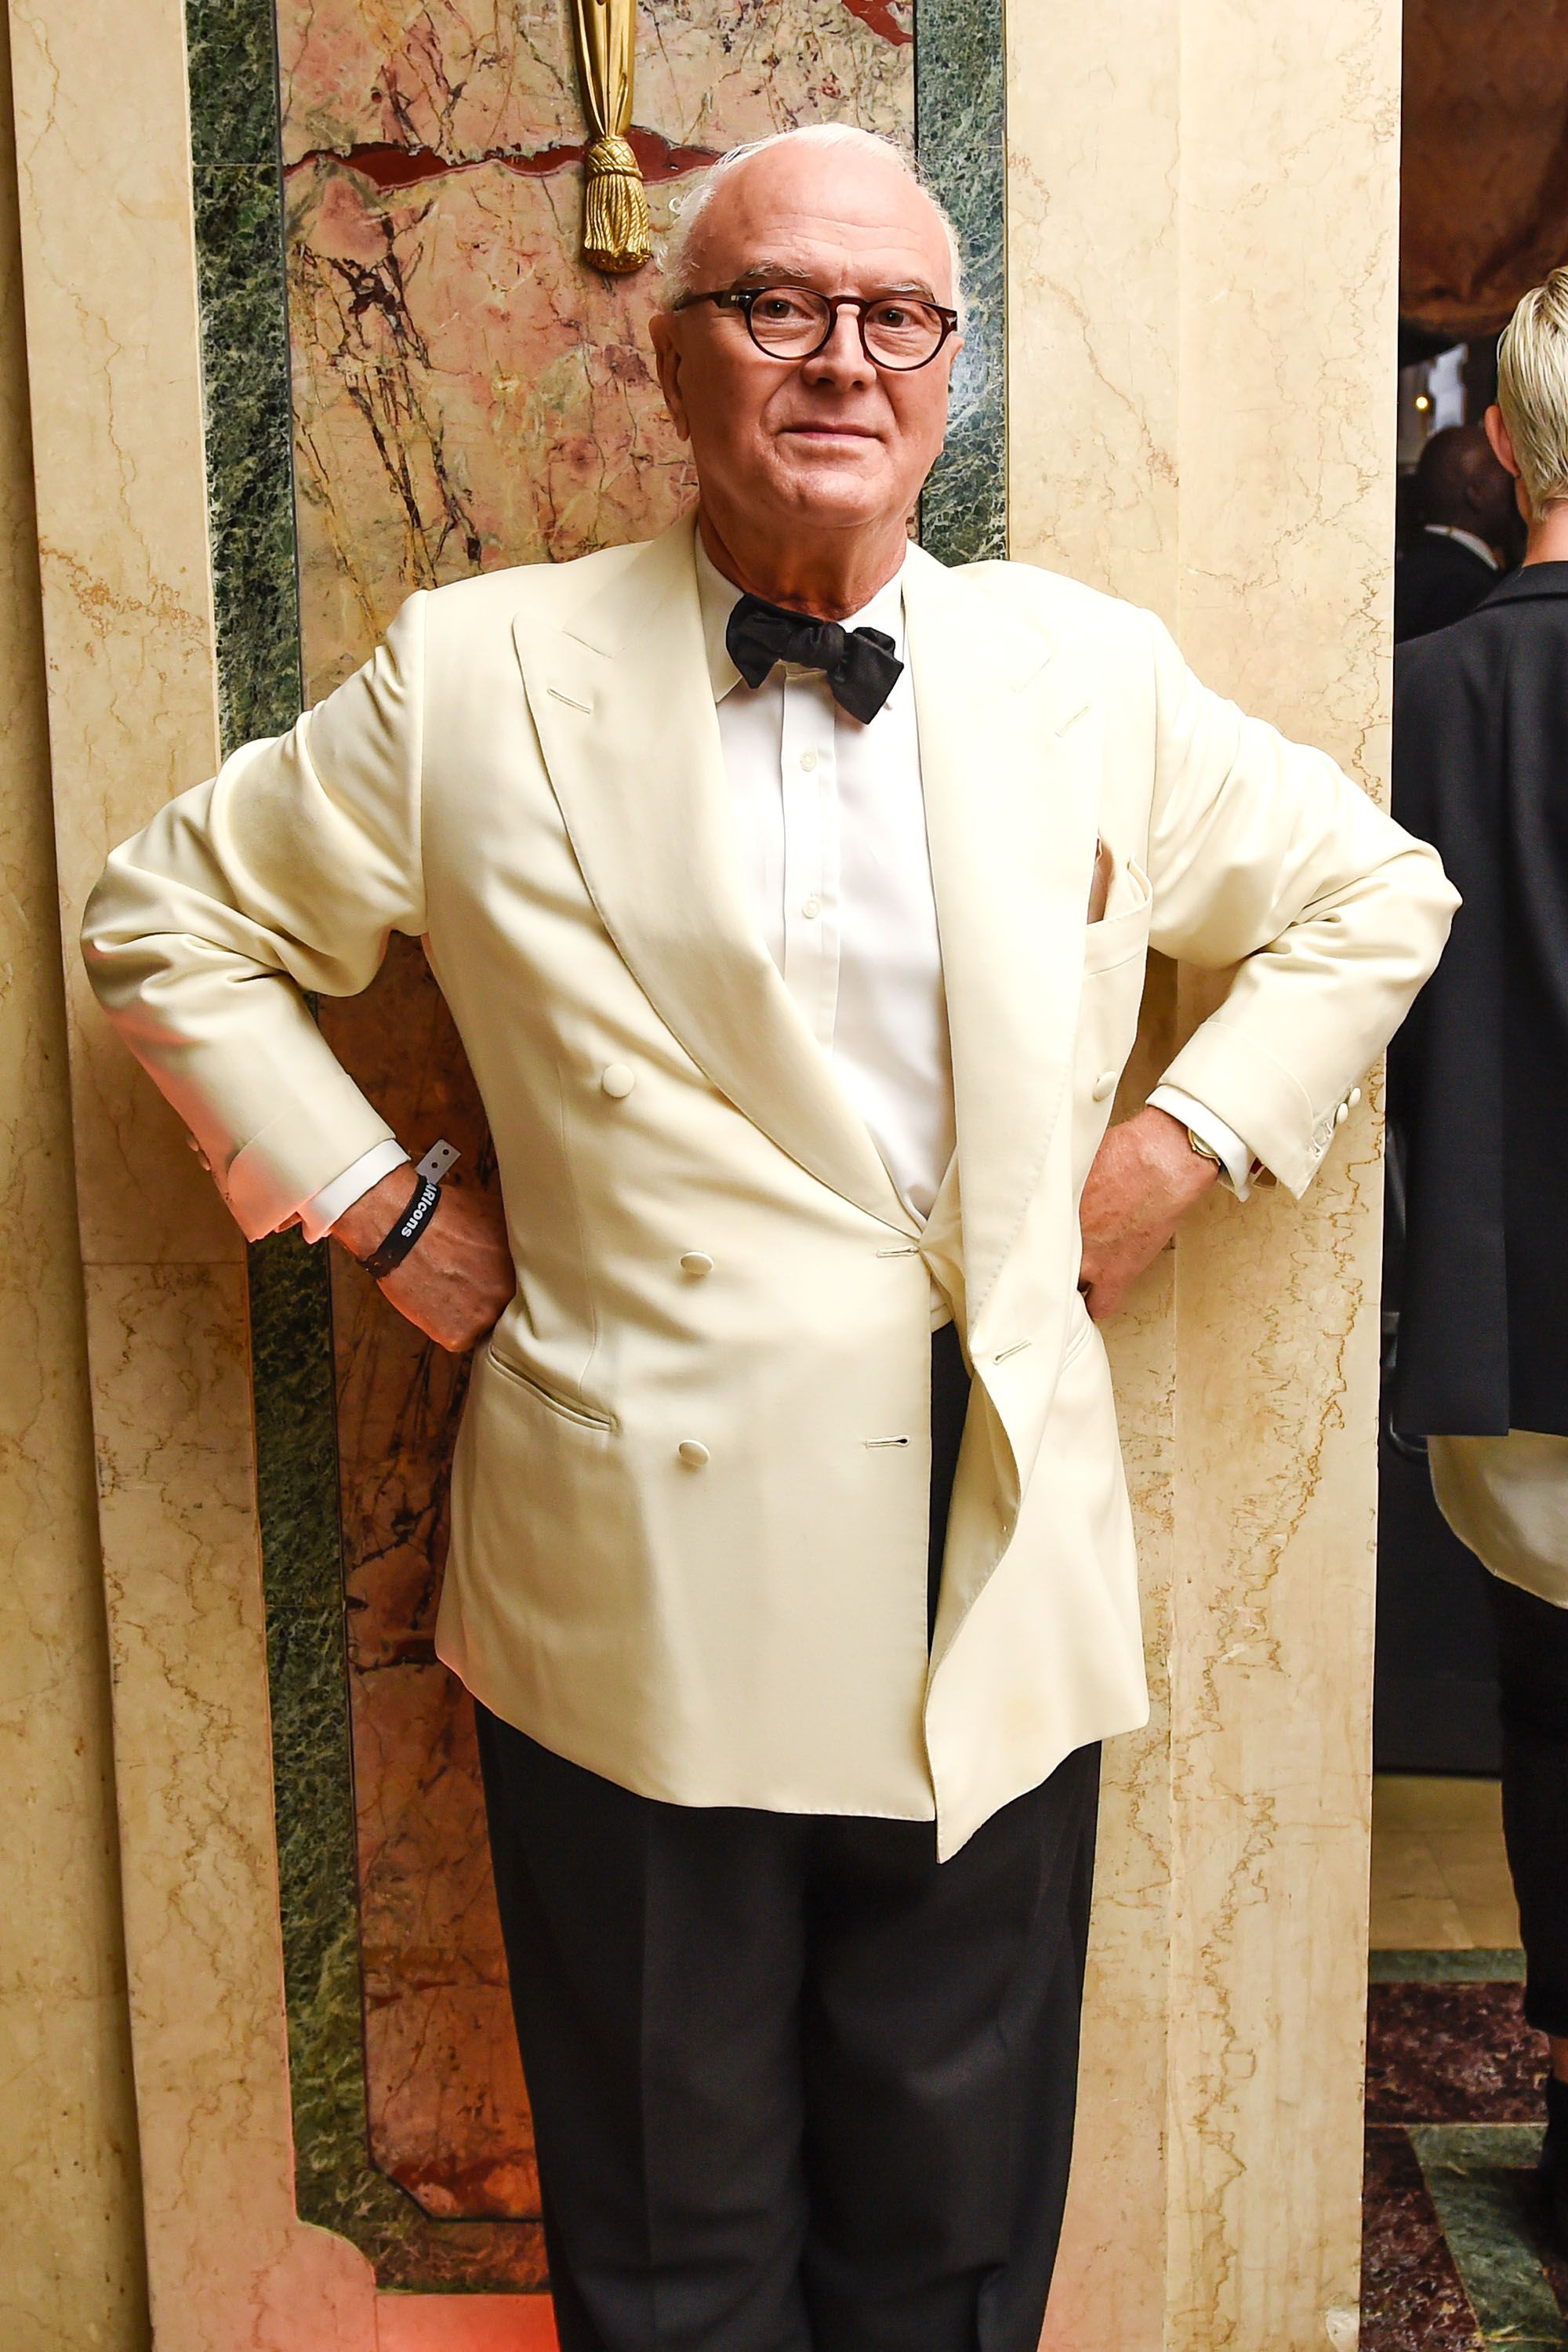 <p>Manolo Blahnik's mother was a fan of designer footwear and during the shortages of World War II, a local cobbler taught her to make her own shoes out of materials that were still available. This in turn led Blahnik to express interest in shoe design from an early age, fashioning creations for his pets. When Blahnik was 20 years old, he attended the University of Geneva and began studying international law, attempting to follow his parents' desire for him to become a diplomat. However, after his first semester, he switched his focus to literature and earned a degree at age 23. It was then that he decided to move to Paris and study art at the École des Beaux-Arts and stage set design at the Louvre Art School while working at a vintage clothing shop. Following his instincts would later make him one of the most famous shoe designers in the entire world.</p>